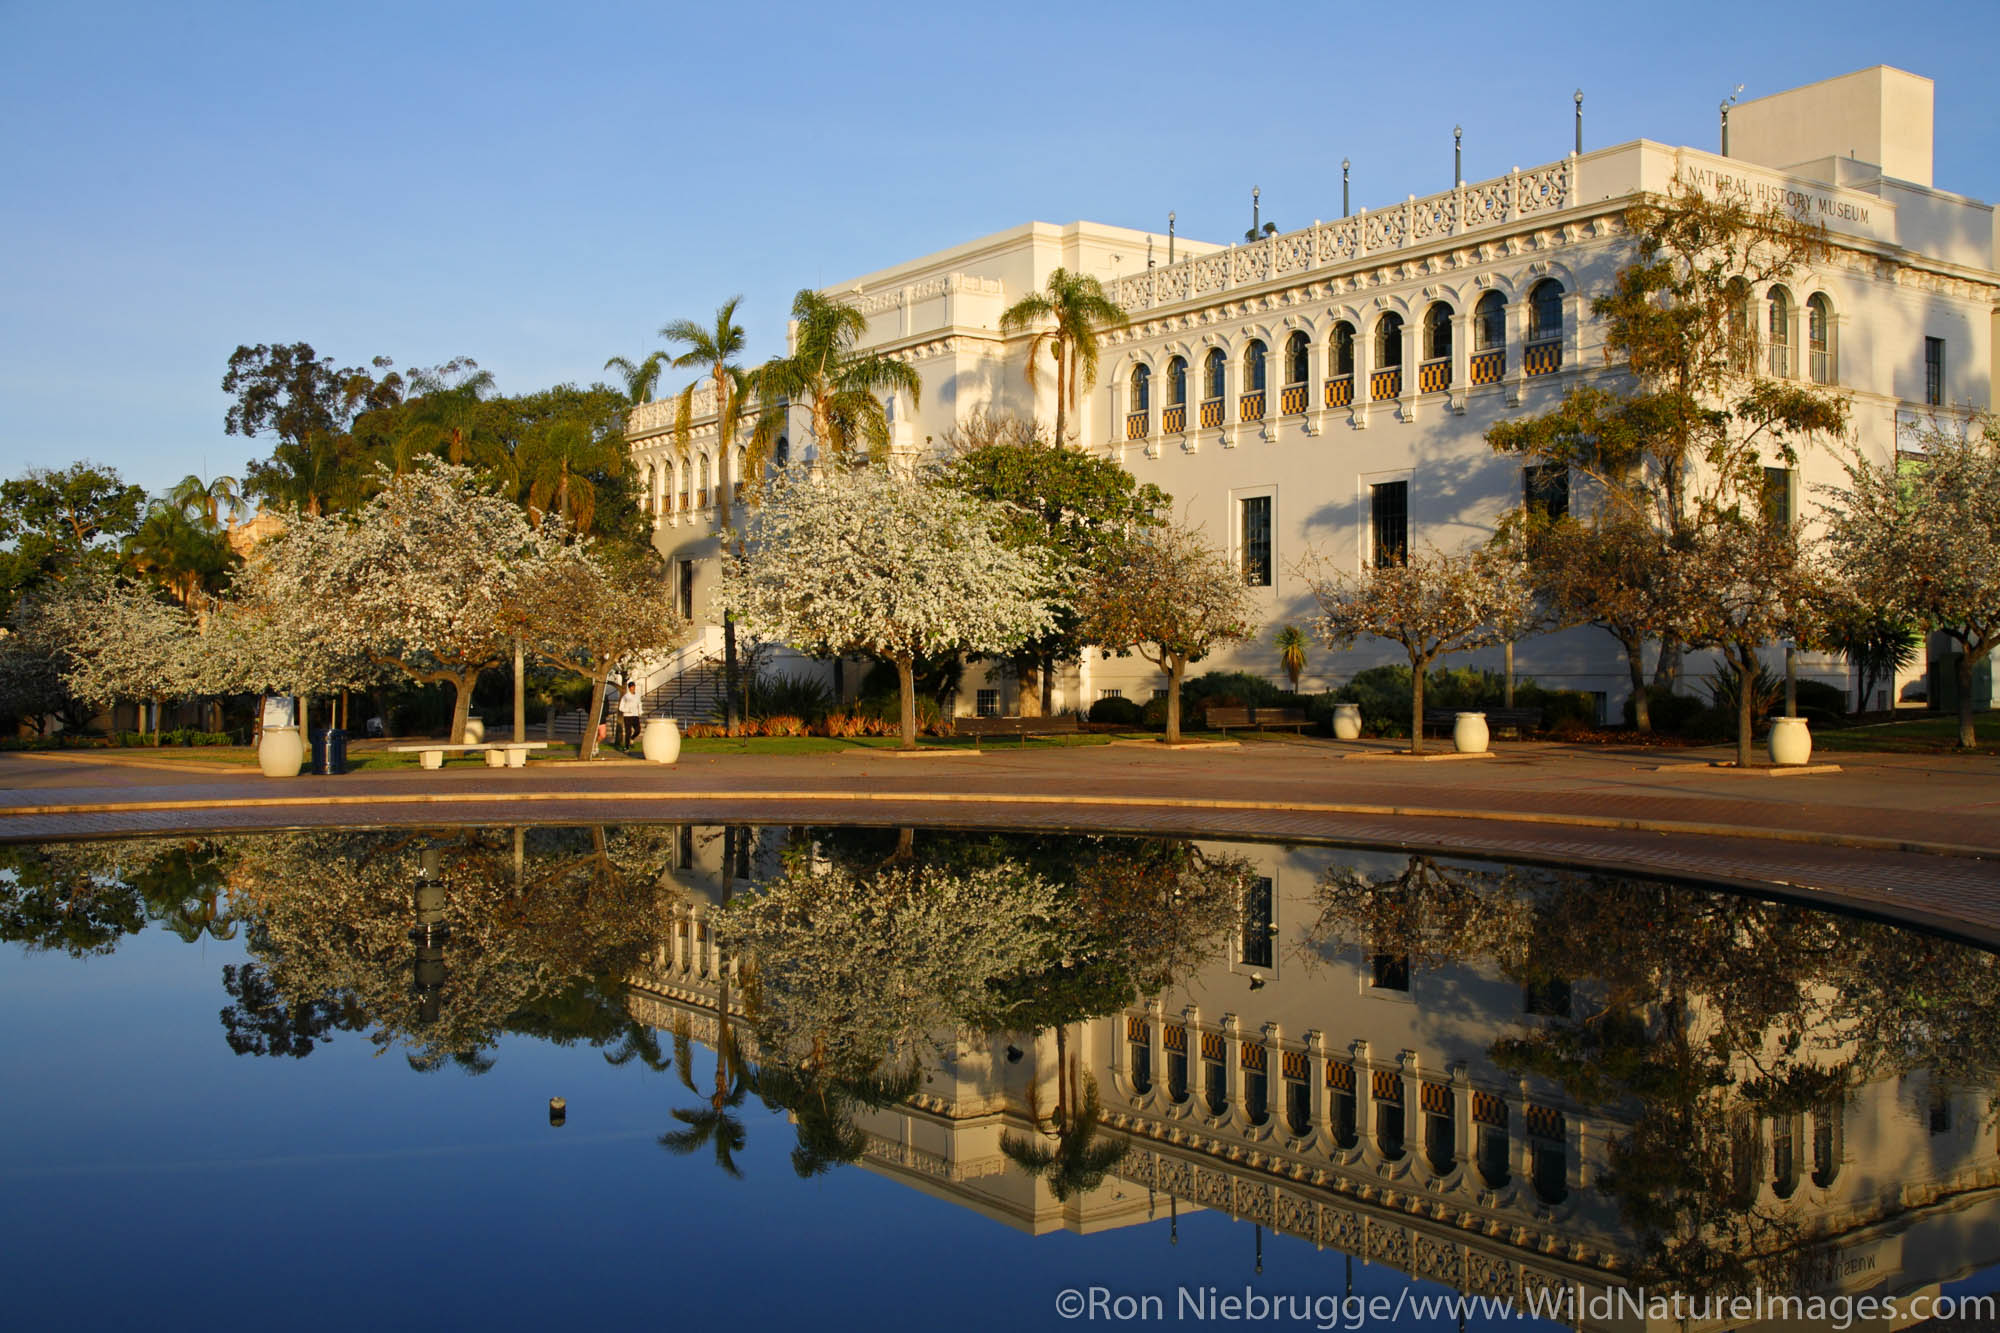 The San Diego Natural History Museum reflects in the Bea Evenson Fountain, Balboa Park, San Diego, California.